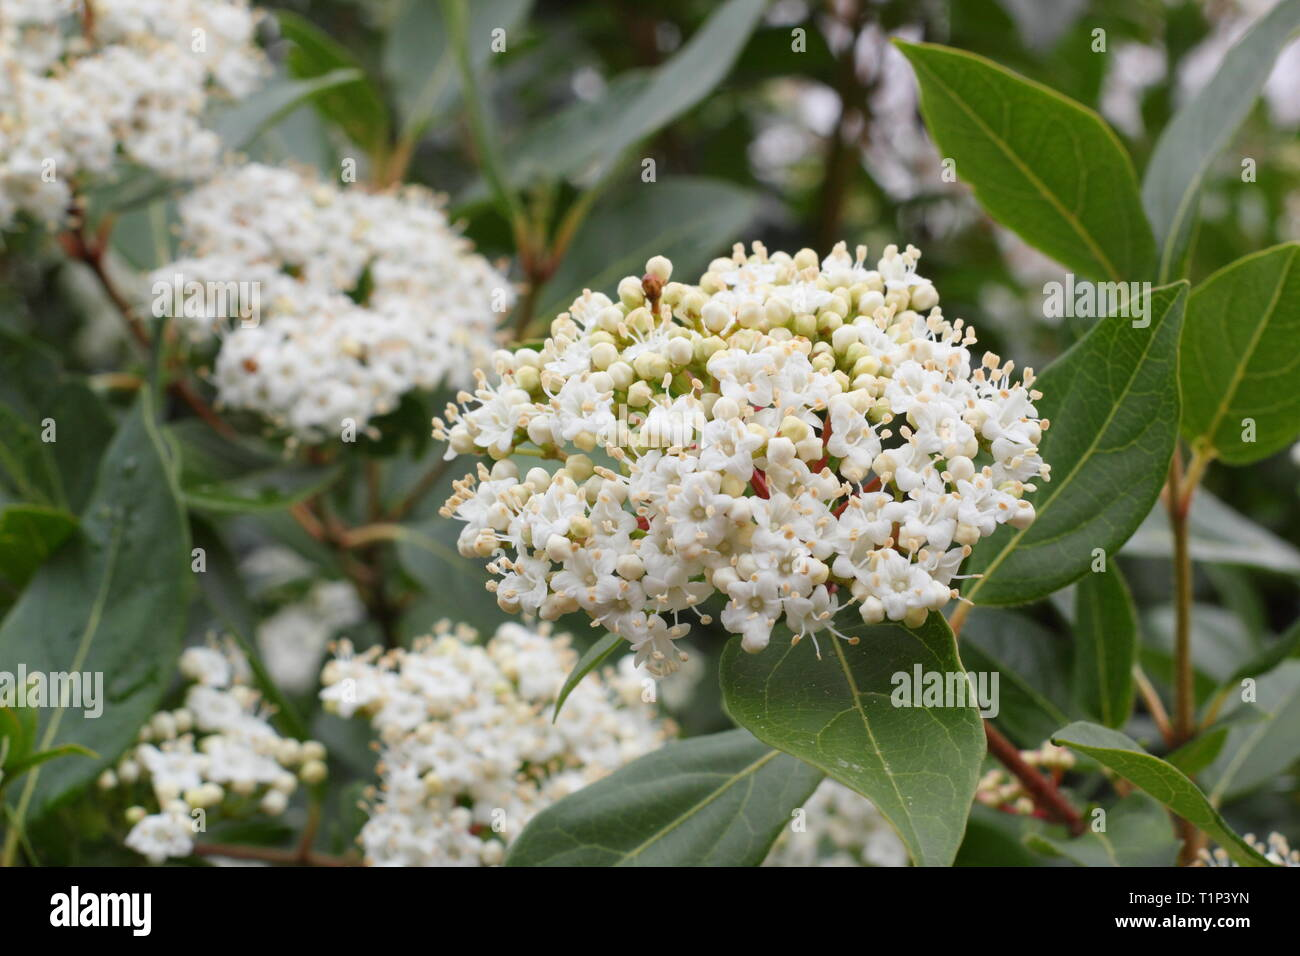 Viburnum tinus 'French White'. Clusters of flowers on wiinter flowering Viburnum 'French White' Februar'y, UK. AGM - Stock Image